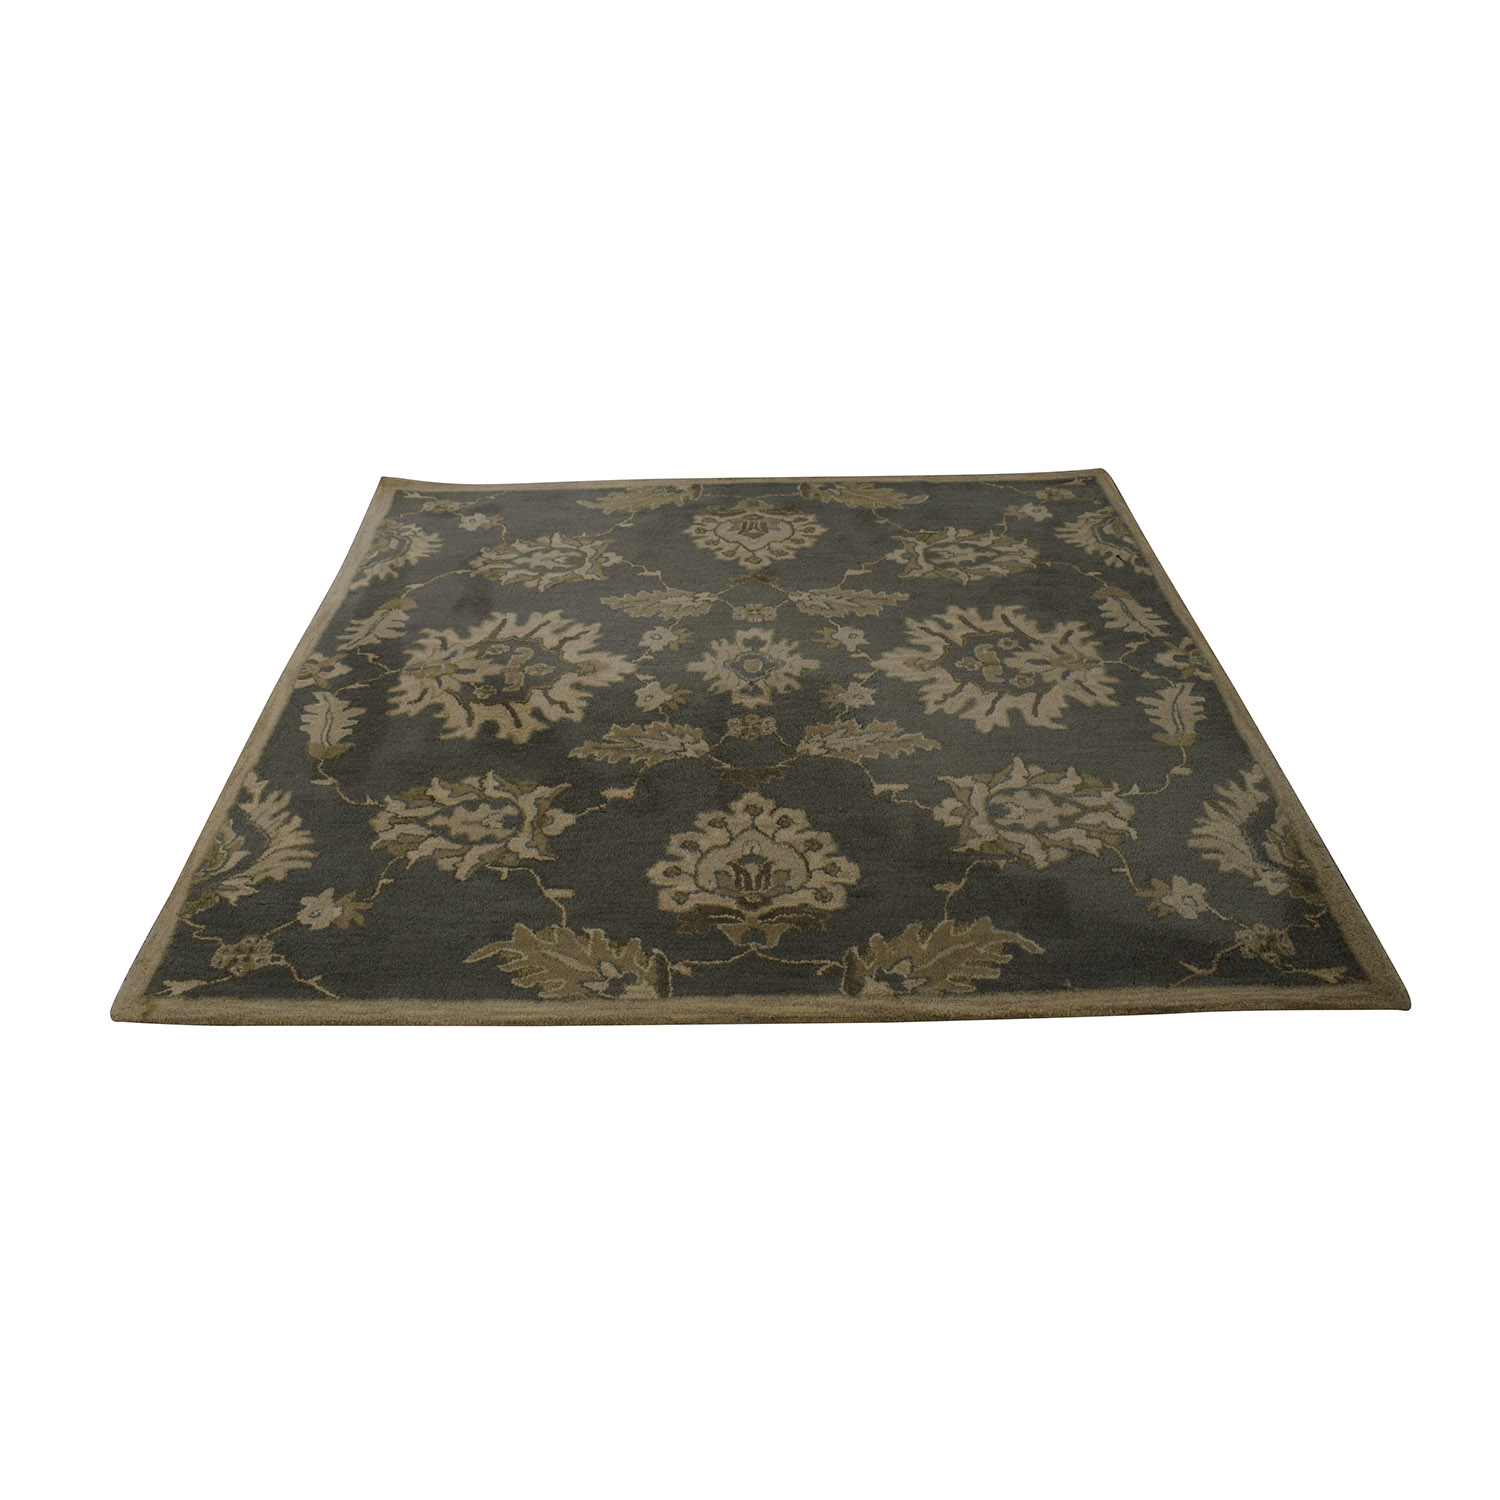 Surya Surya Basset Caesar Grey and Beige Rug for sale